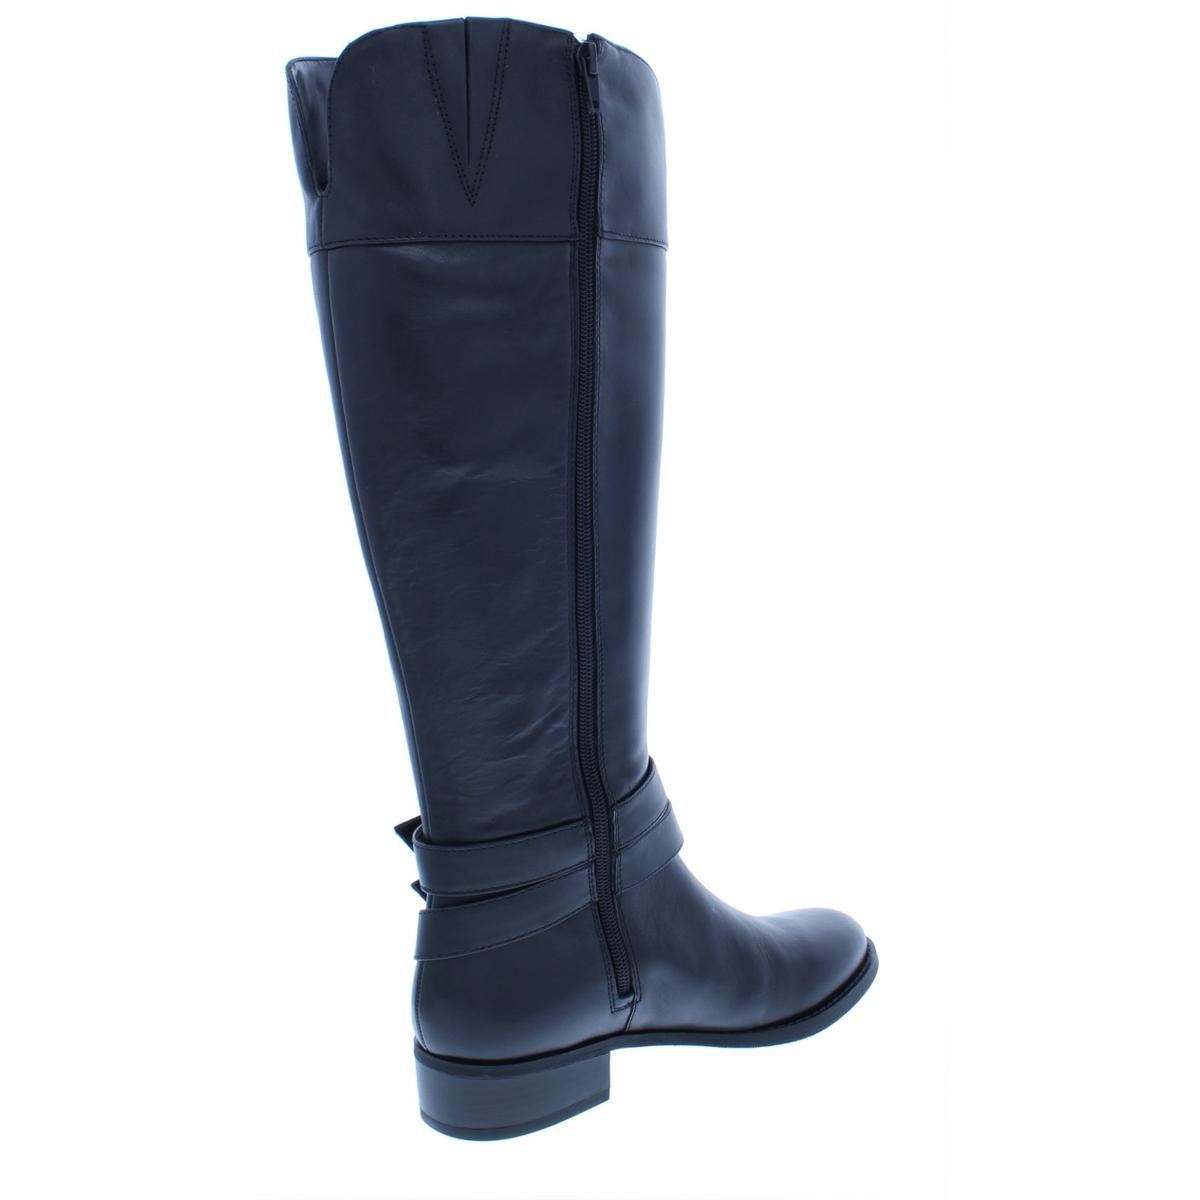 INC-Womens-Frank-II-Leather-Wide-Calf-Knee-High-Riding-Boots-Shoes-BHFO-5125 thumbnail 4